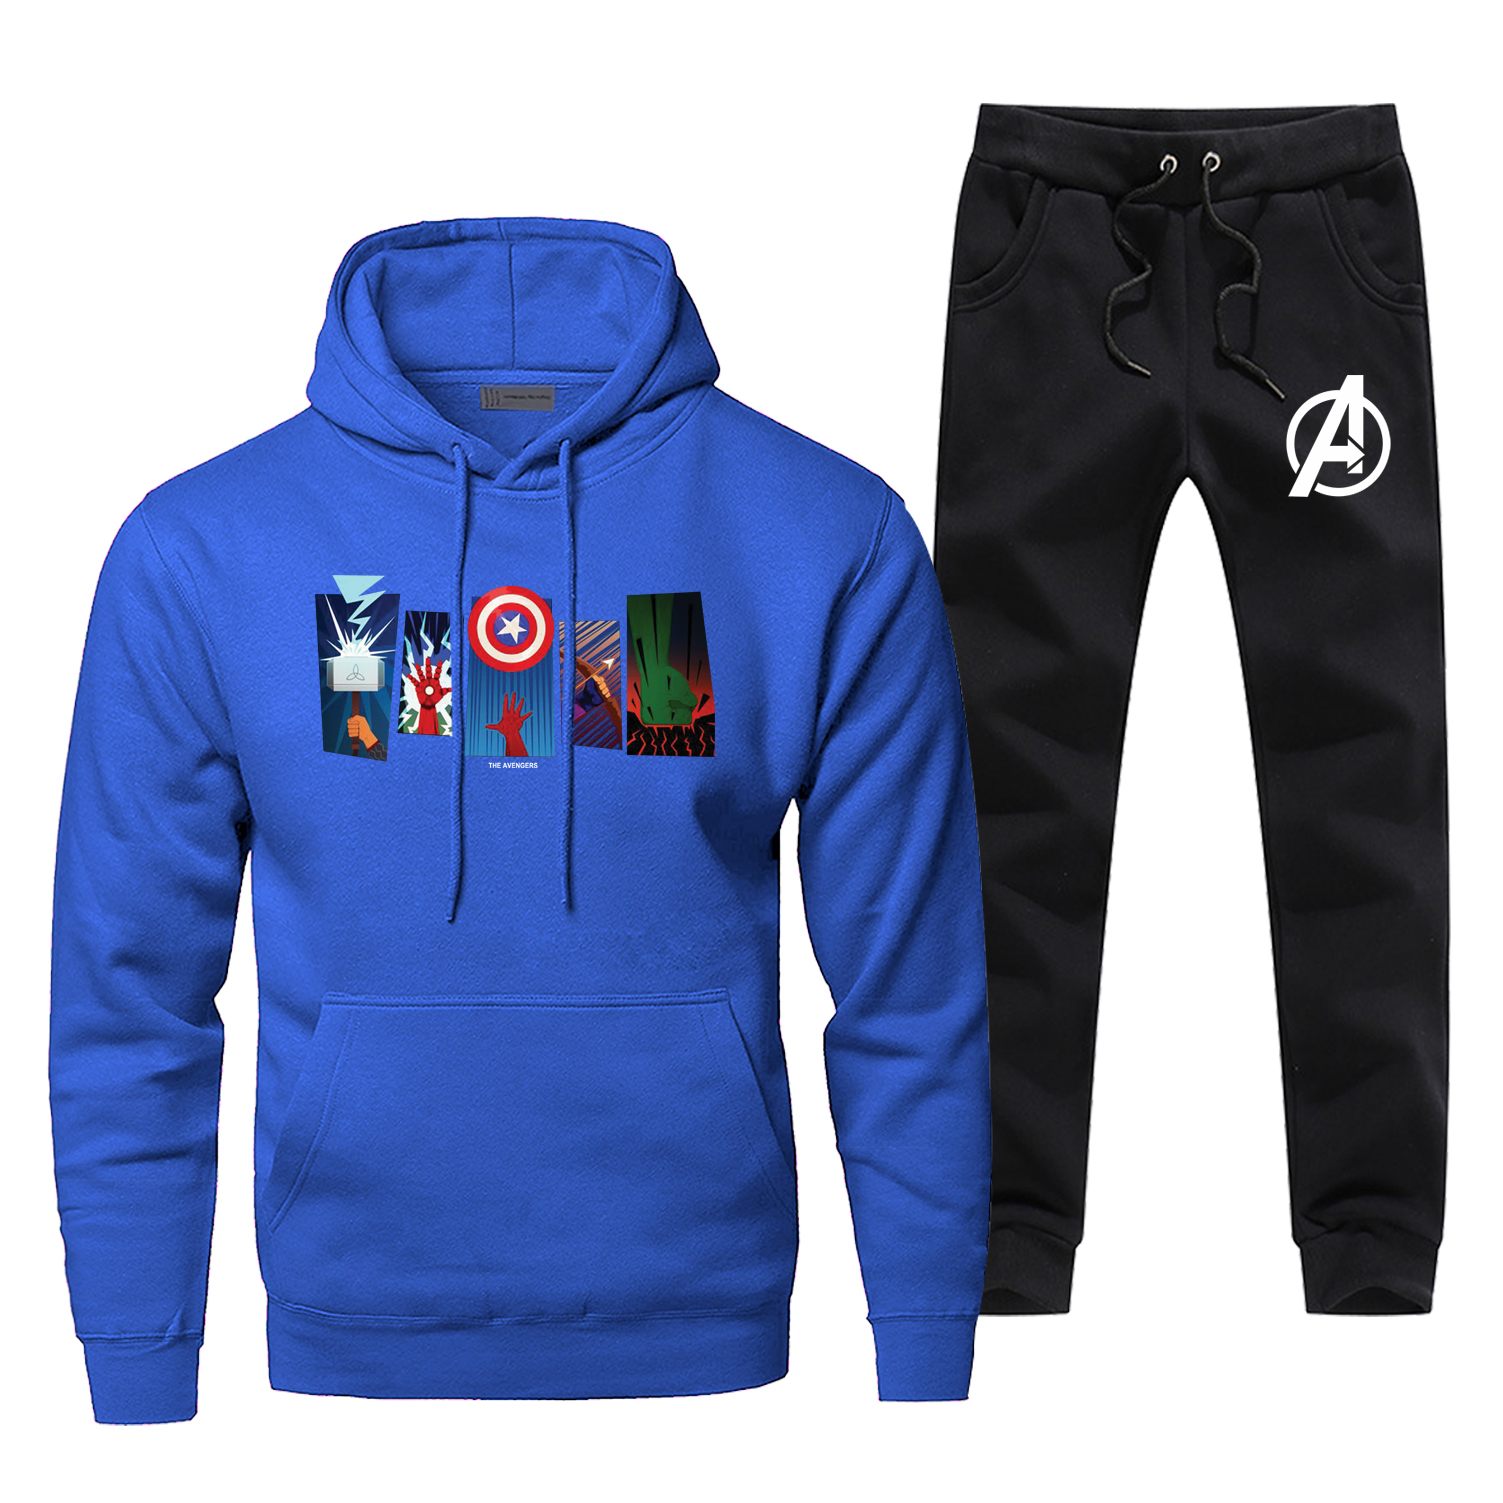 The Avengers Iron Man Complete Man Tracksuit Comfortable Fashion Men's Clothing Casual Fitness Sportsman Wear Hip Hop Male Sets